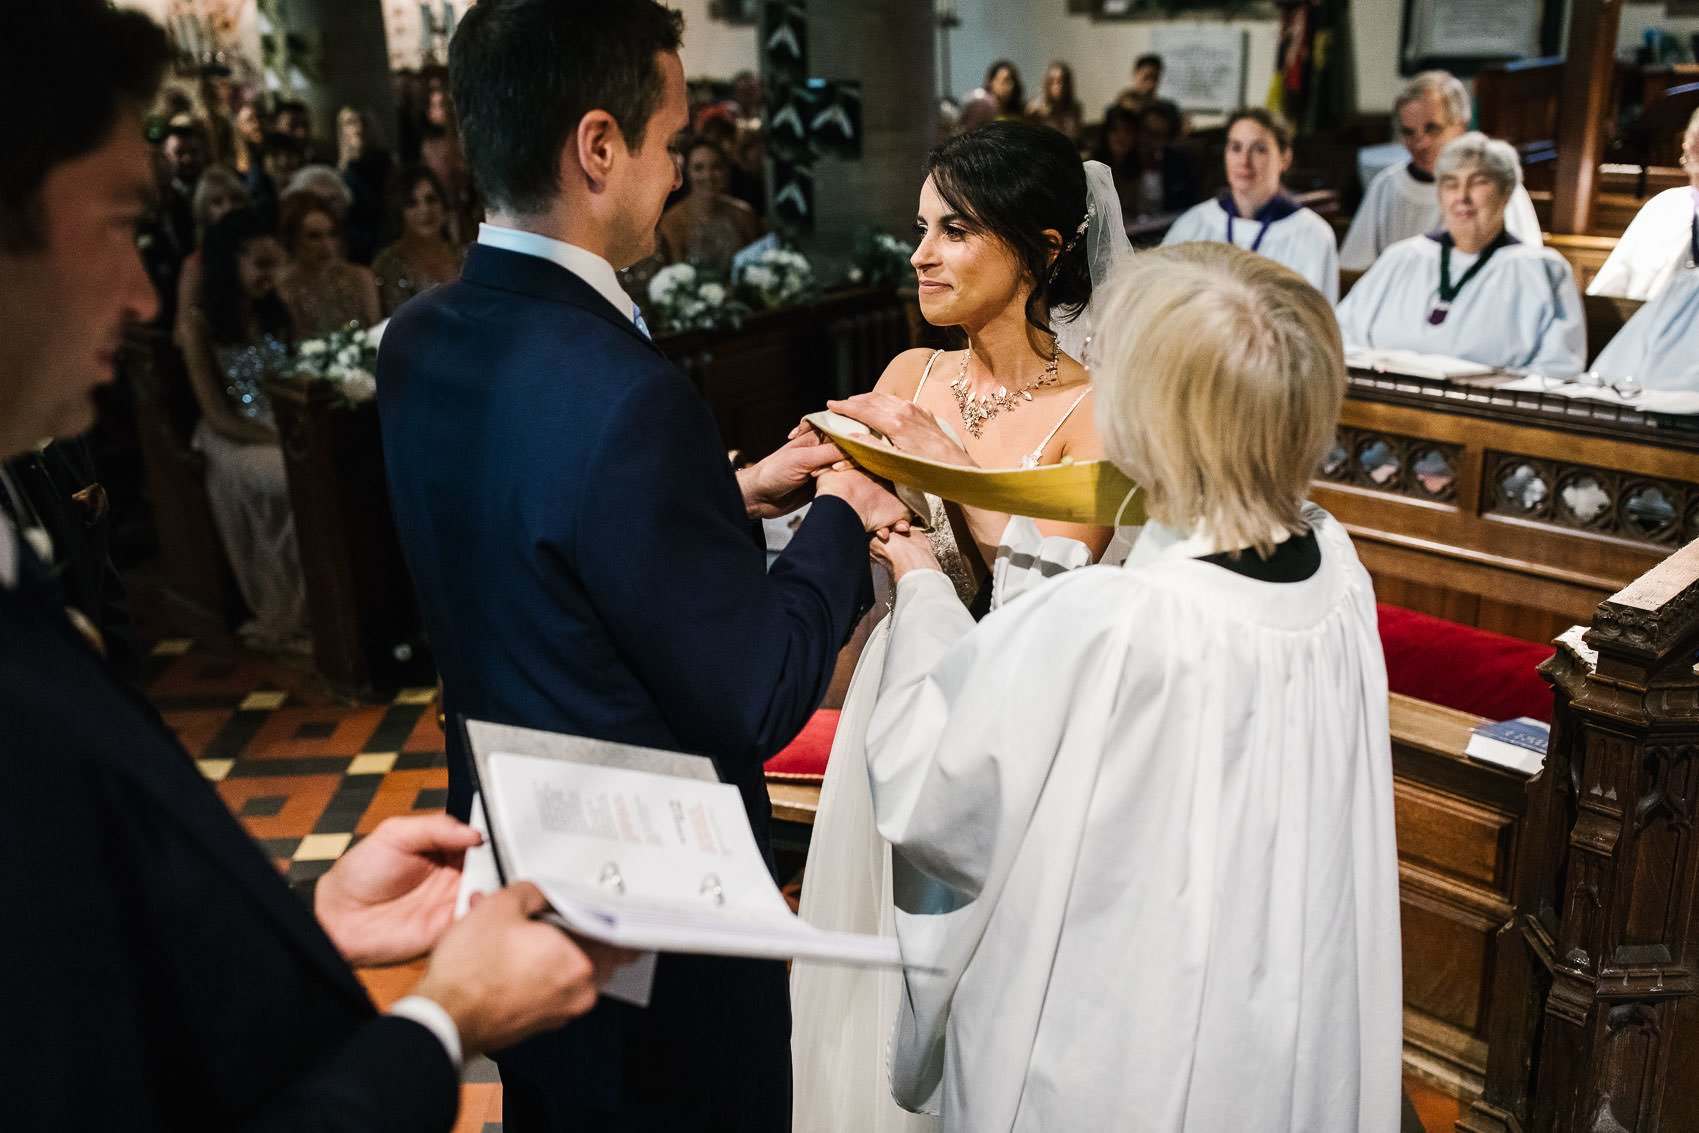 Wedding couple married in church in Surrey